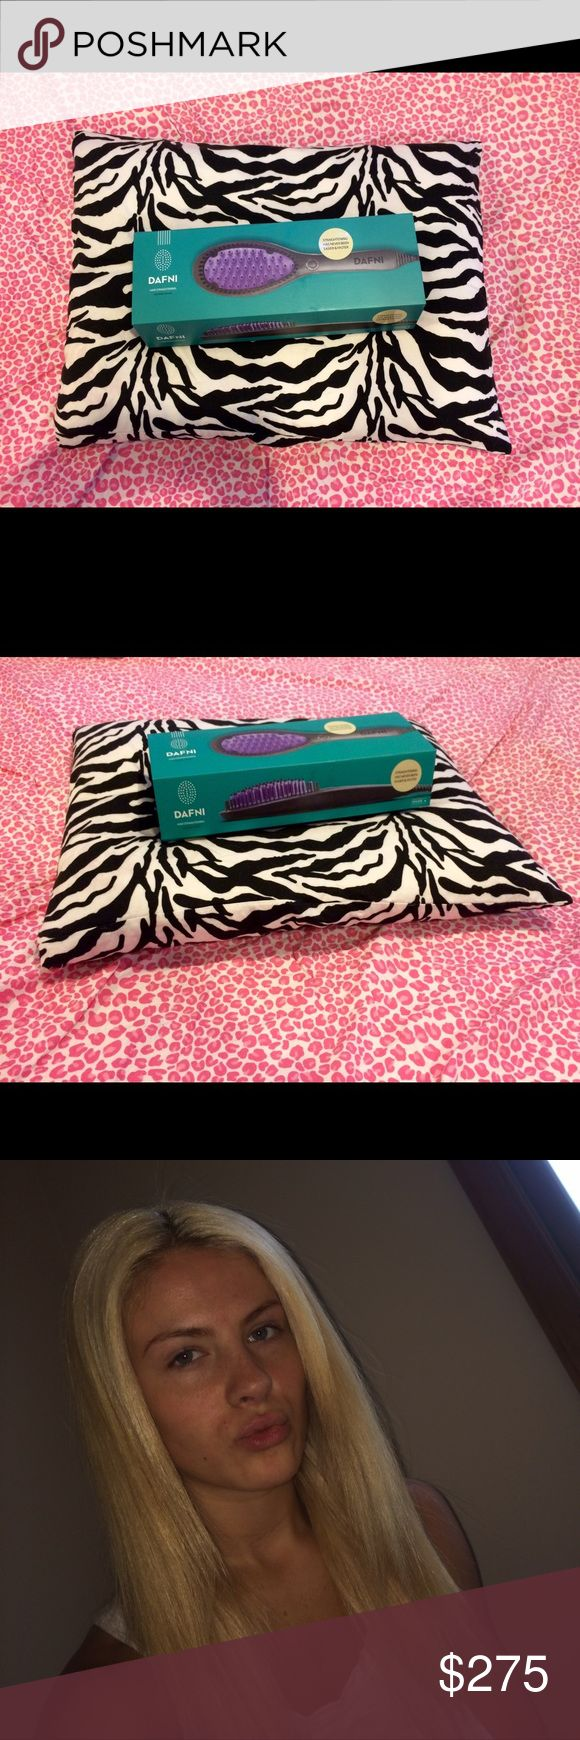 The DAFNI Hair Straightening Ceramic Brush! This salon envied hair straightener is just waiting for a new best friend. With the market selling price at $300.00(+) I'm here to give you a discounted price on a brand new DAFNI hair straightener brush AND gloves/heating pad. This straightener works wonderfully for all hair types! DAFNI Accessories